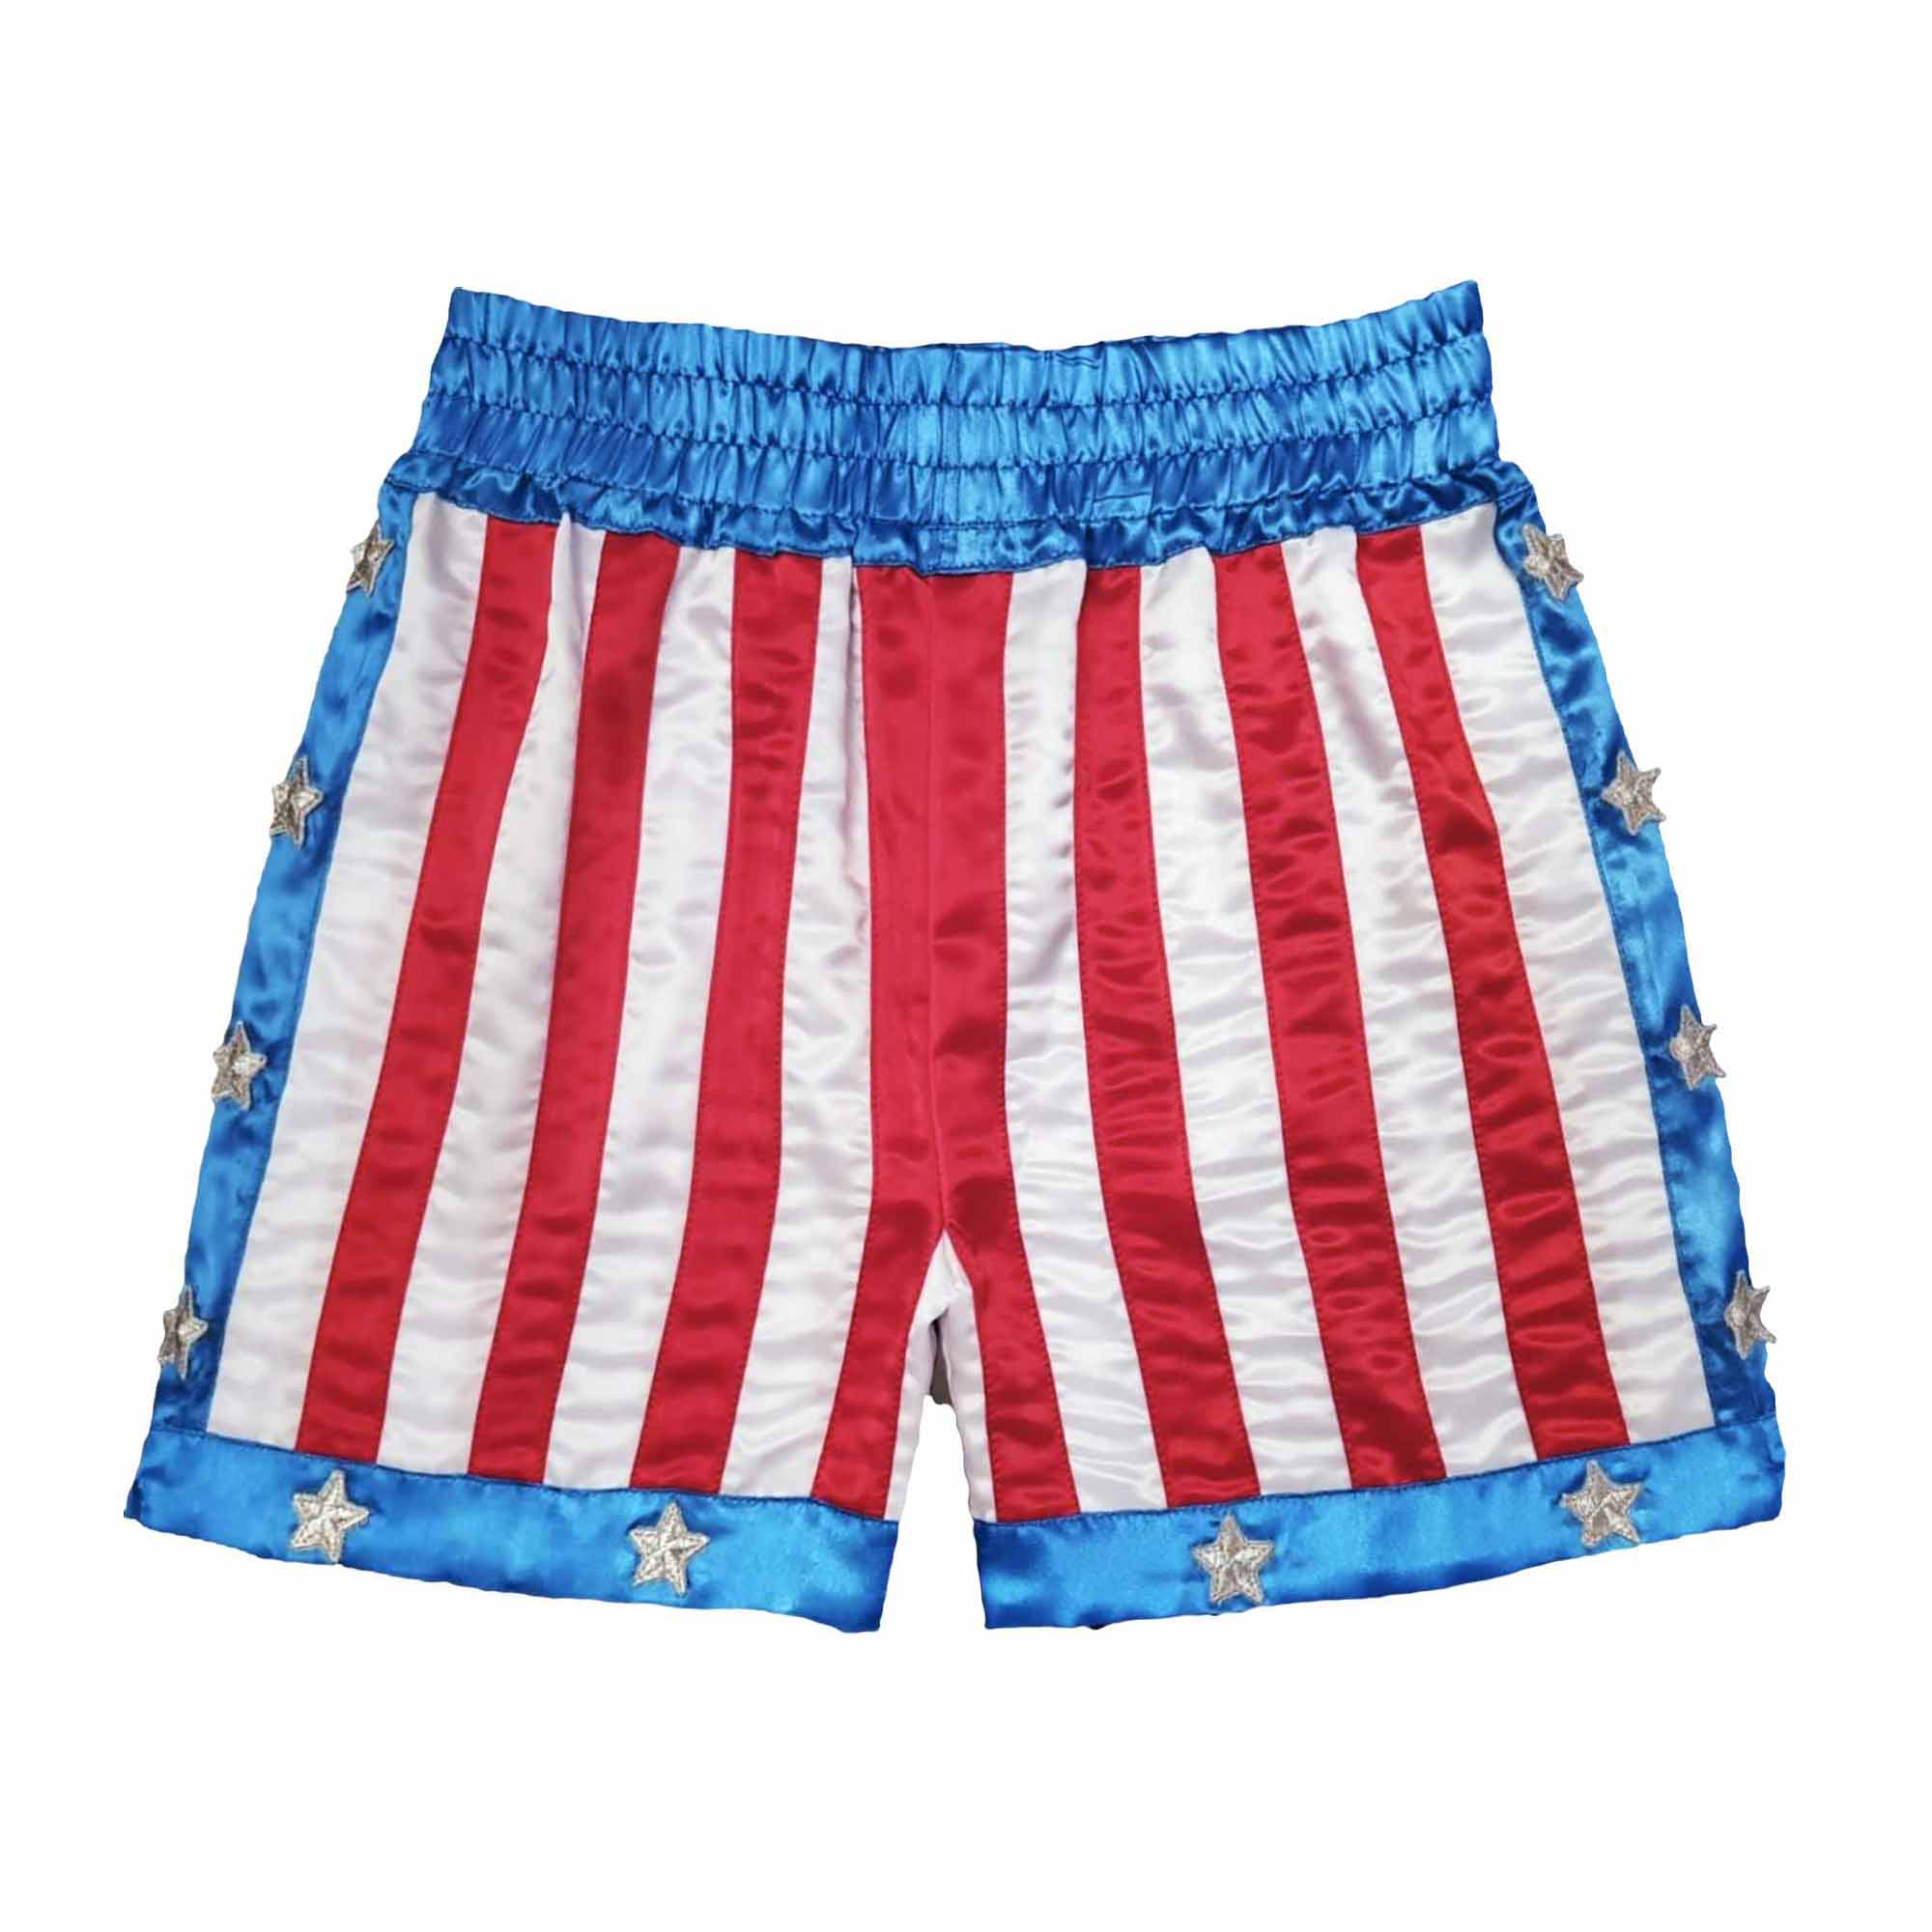 Rocky IV Stars And Stripes Boxing Trunks